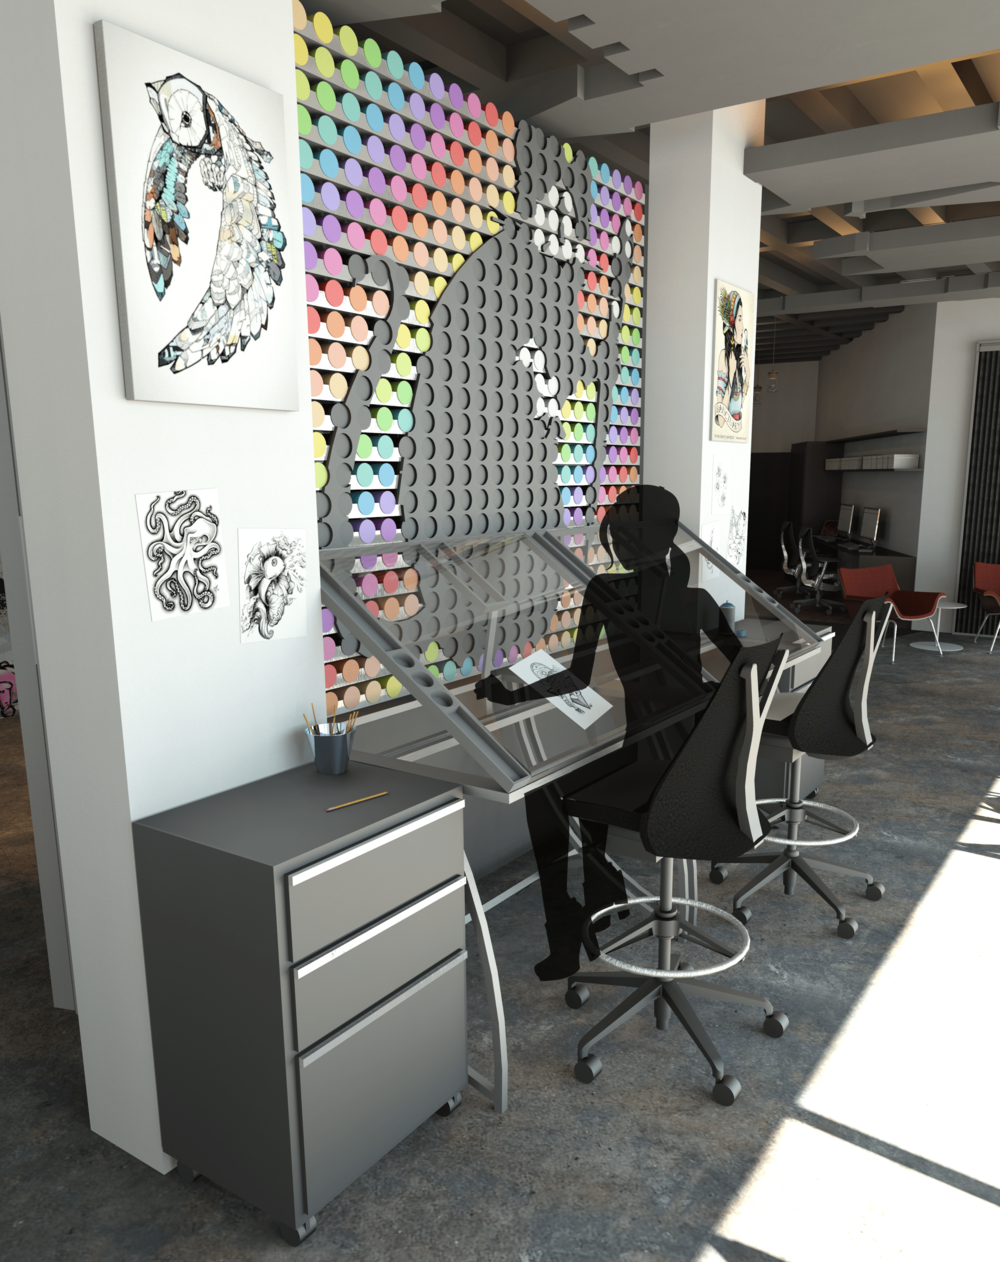 Drayton_Tower_Space.rvt_2016-May-24_03-18-56PM-000_workspace_by_spray_cans-min.png